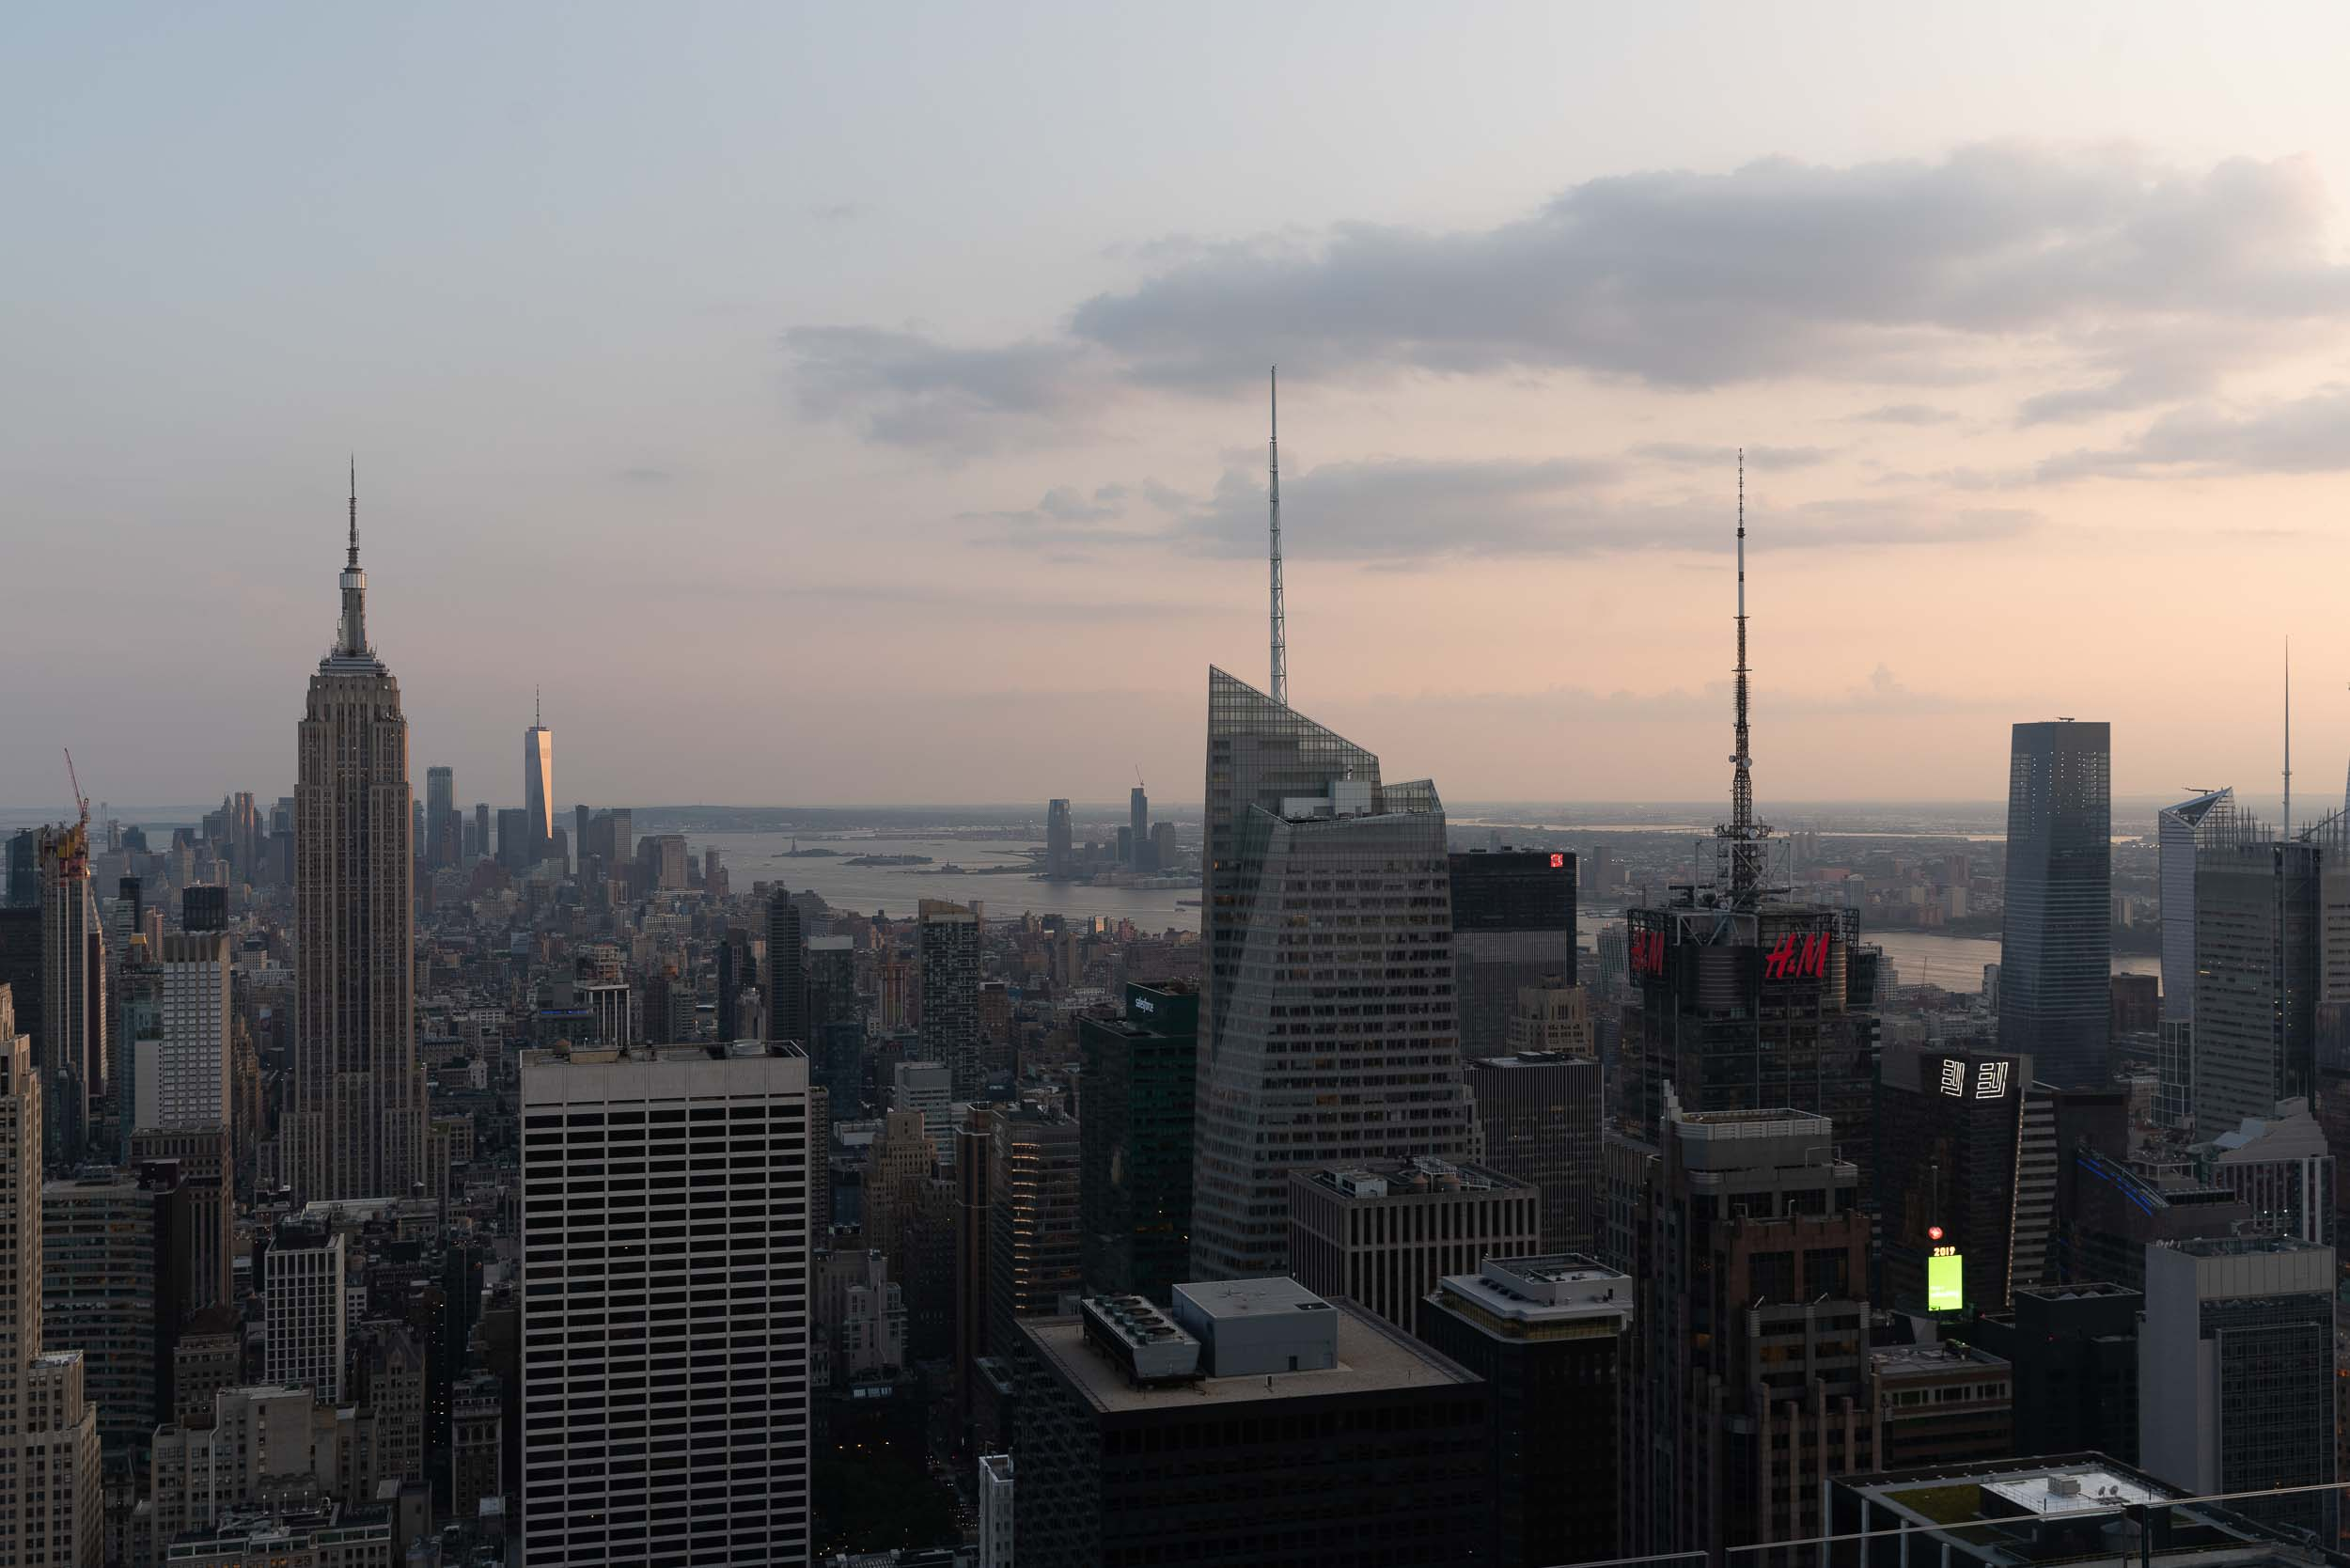 Anthony LeDonne Is On Top Of The Rock - 00013.jpg